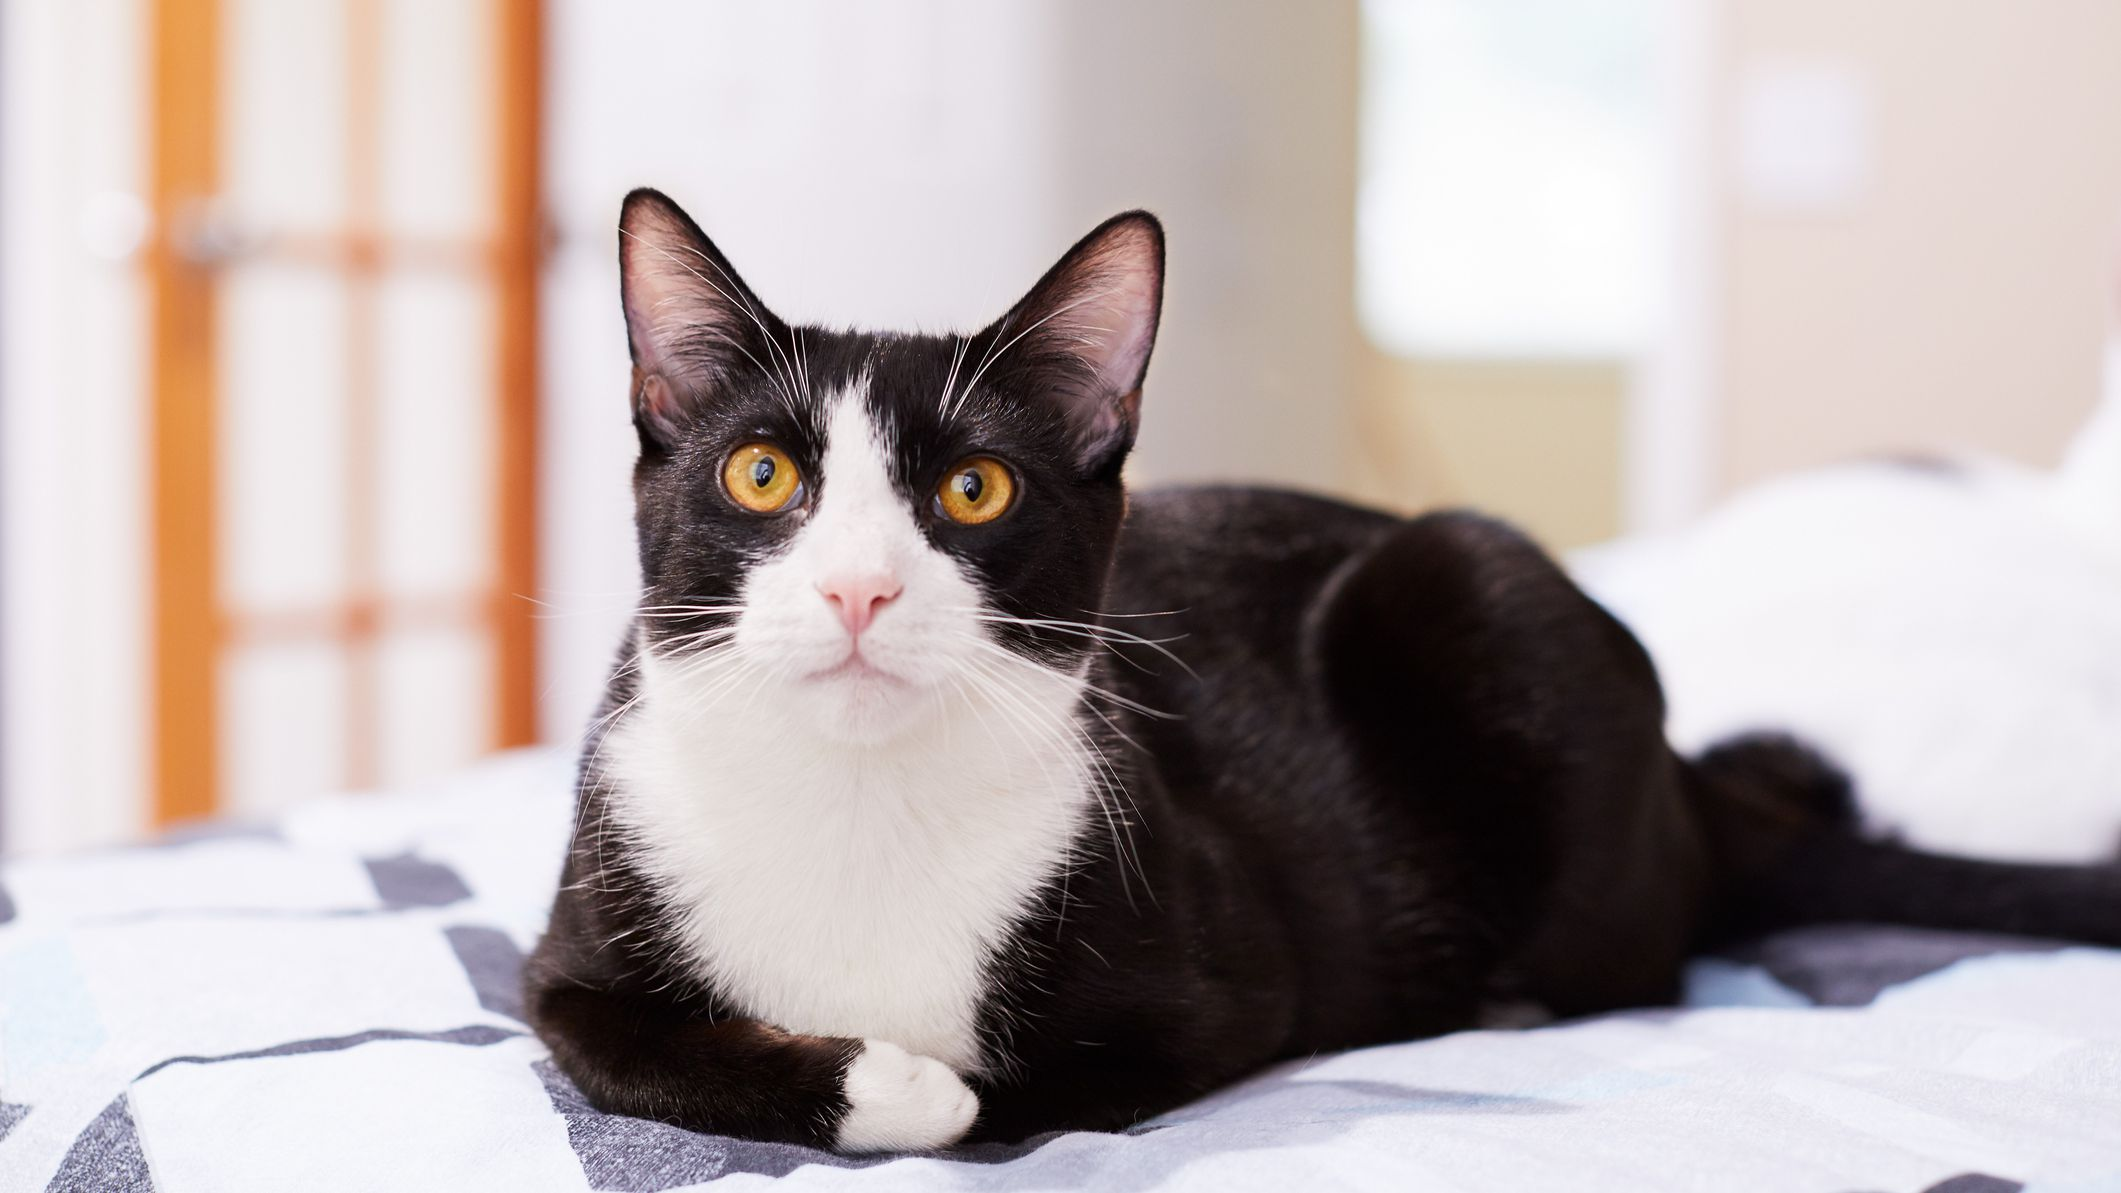 10 Black And White Cat Breeds